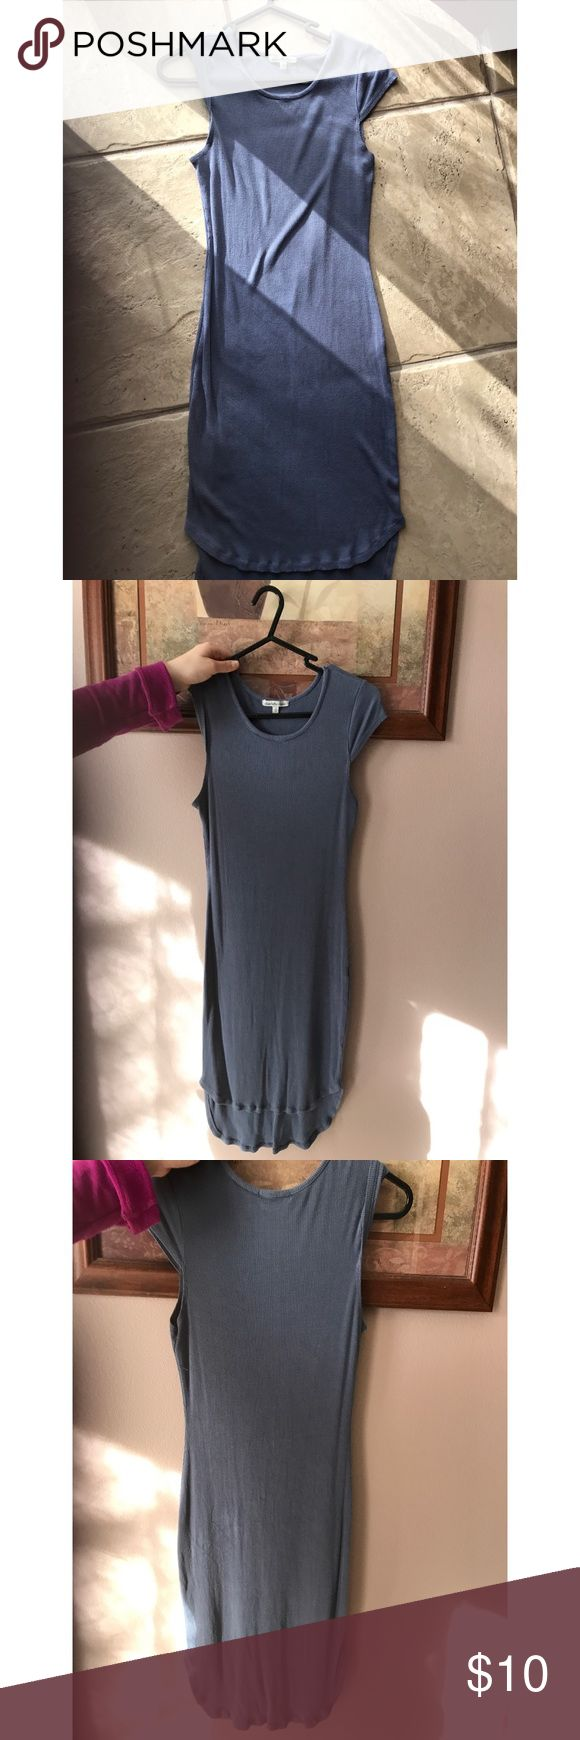 Bodycon dress Very sexy casual bodycon dress. Form fitting and very flattering. Only owned for about a year. Light fading, but still in great shape. Charlotte Russe Dresses Mini #bodycondresscasual